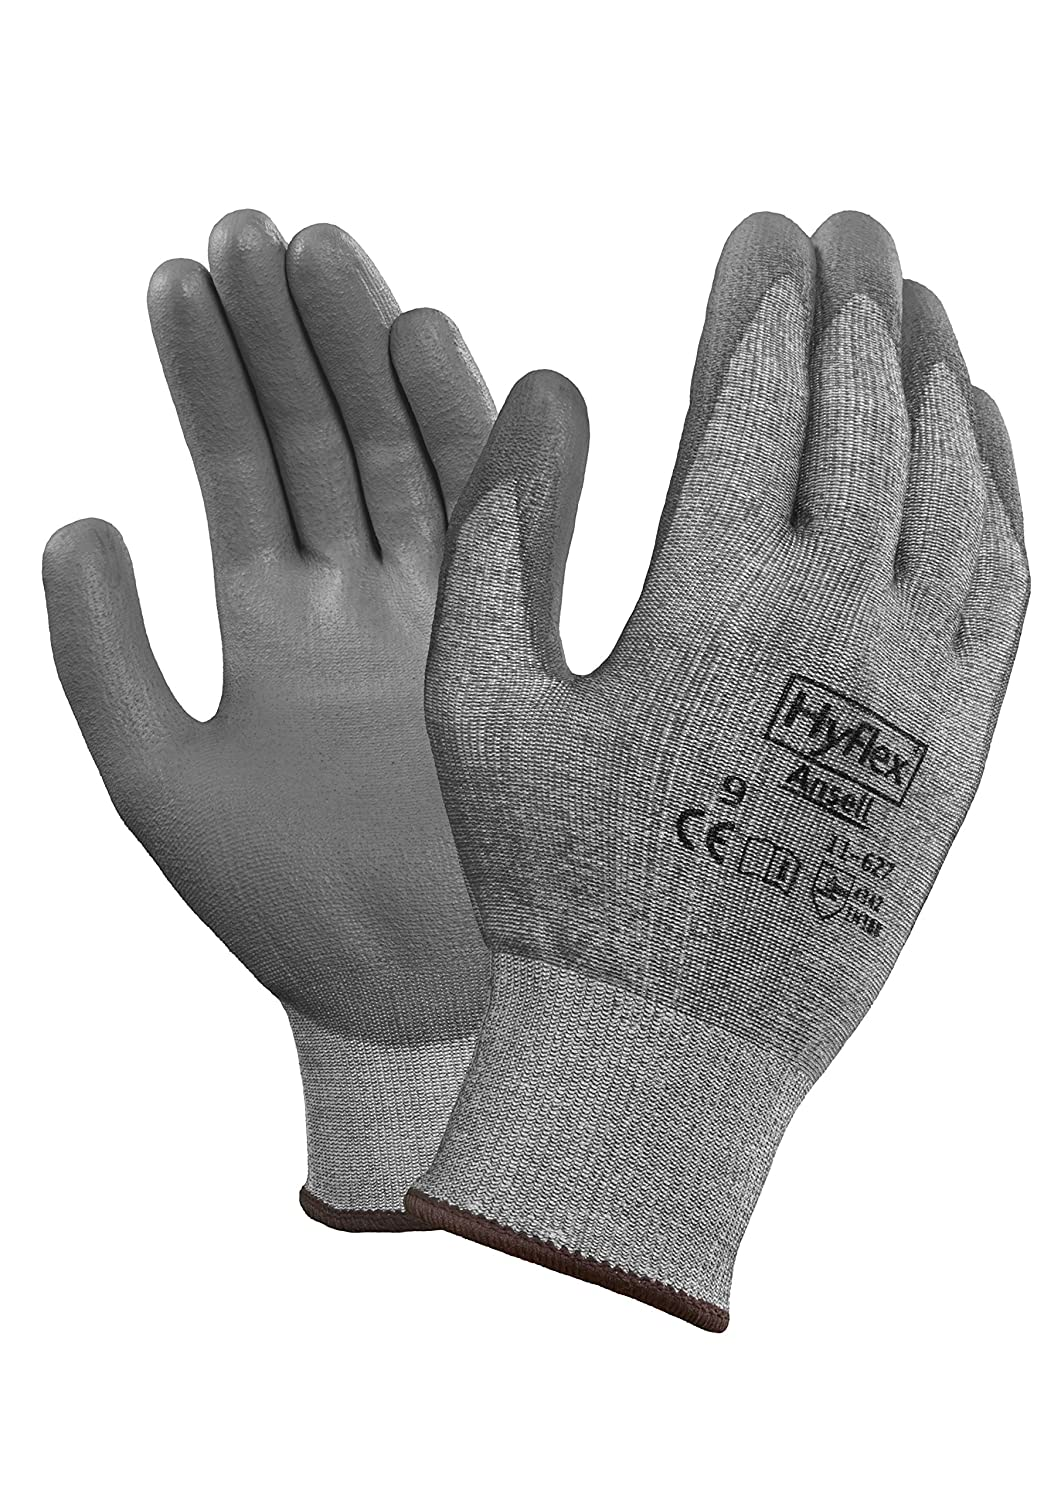 Ansell HyFlex 11-627 Dyneema Glove, Cut Resistant, Polyurethane Coating, Medium, Size 9 (Pack of 1): Cut Resistant Safety Gloves: Industrial & Scientific